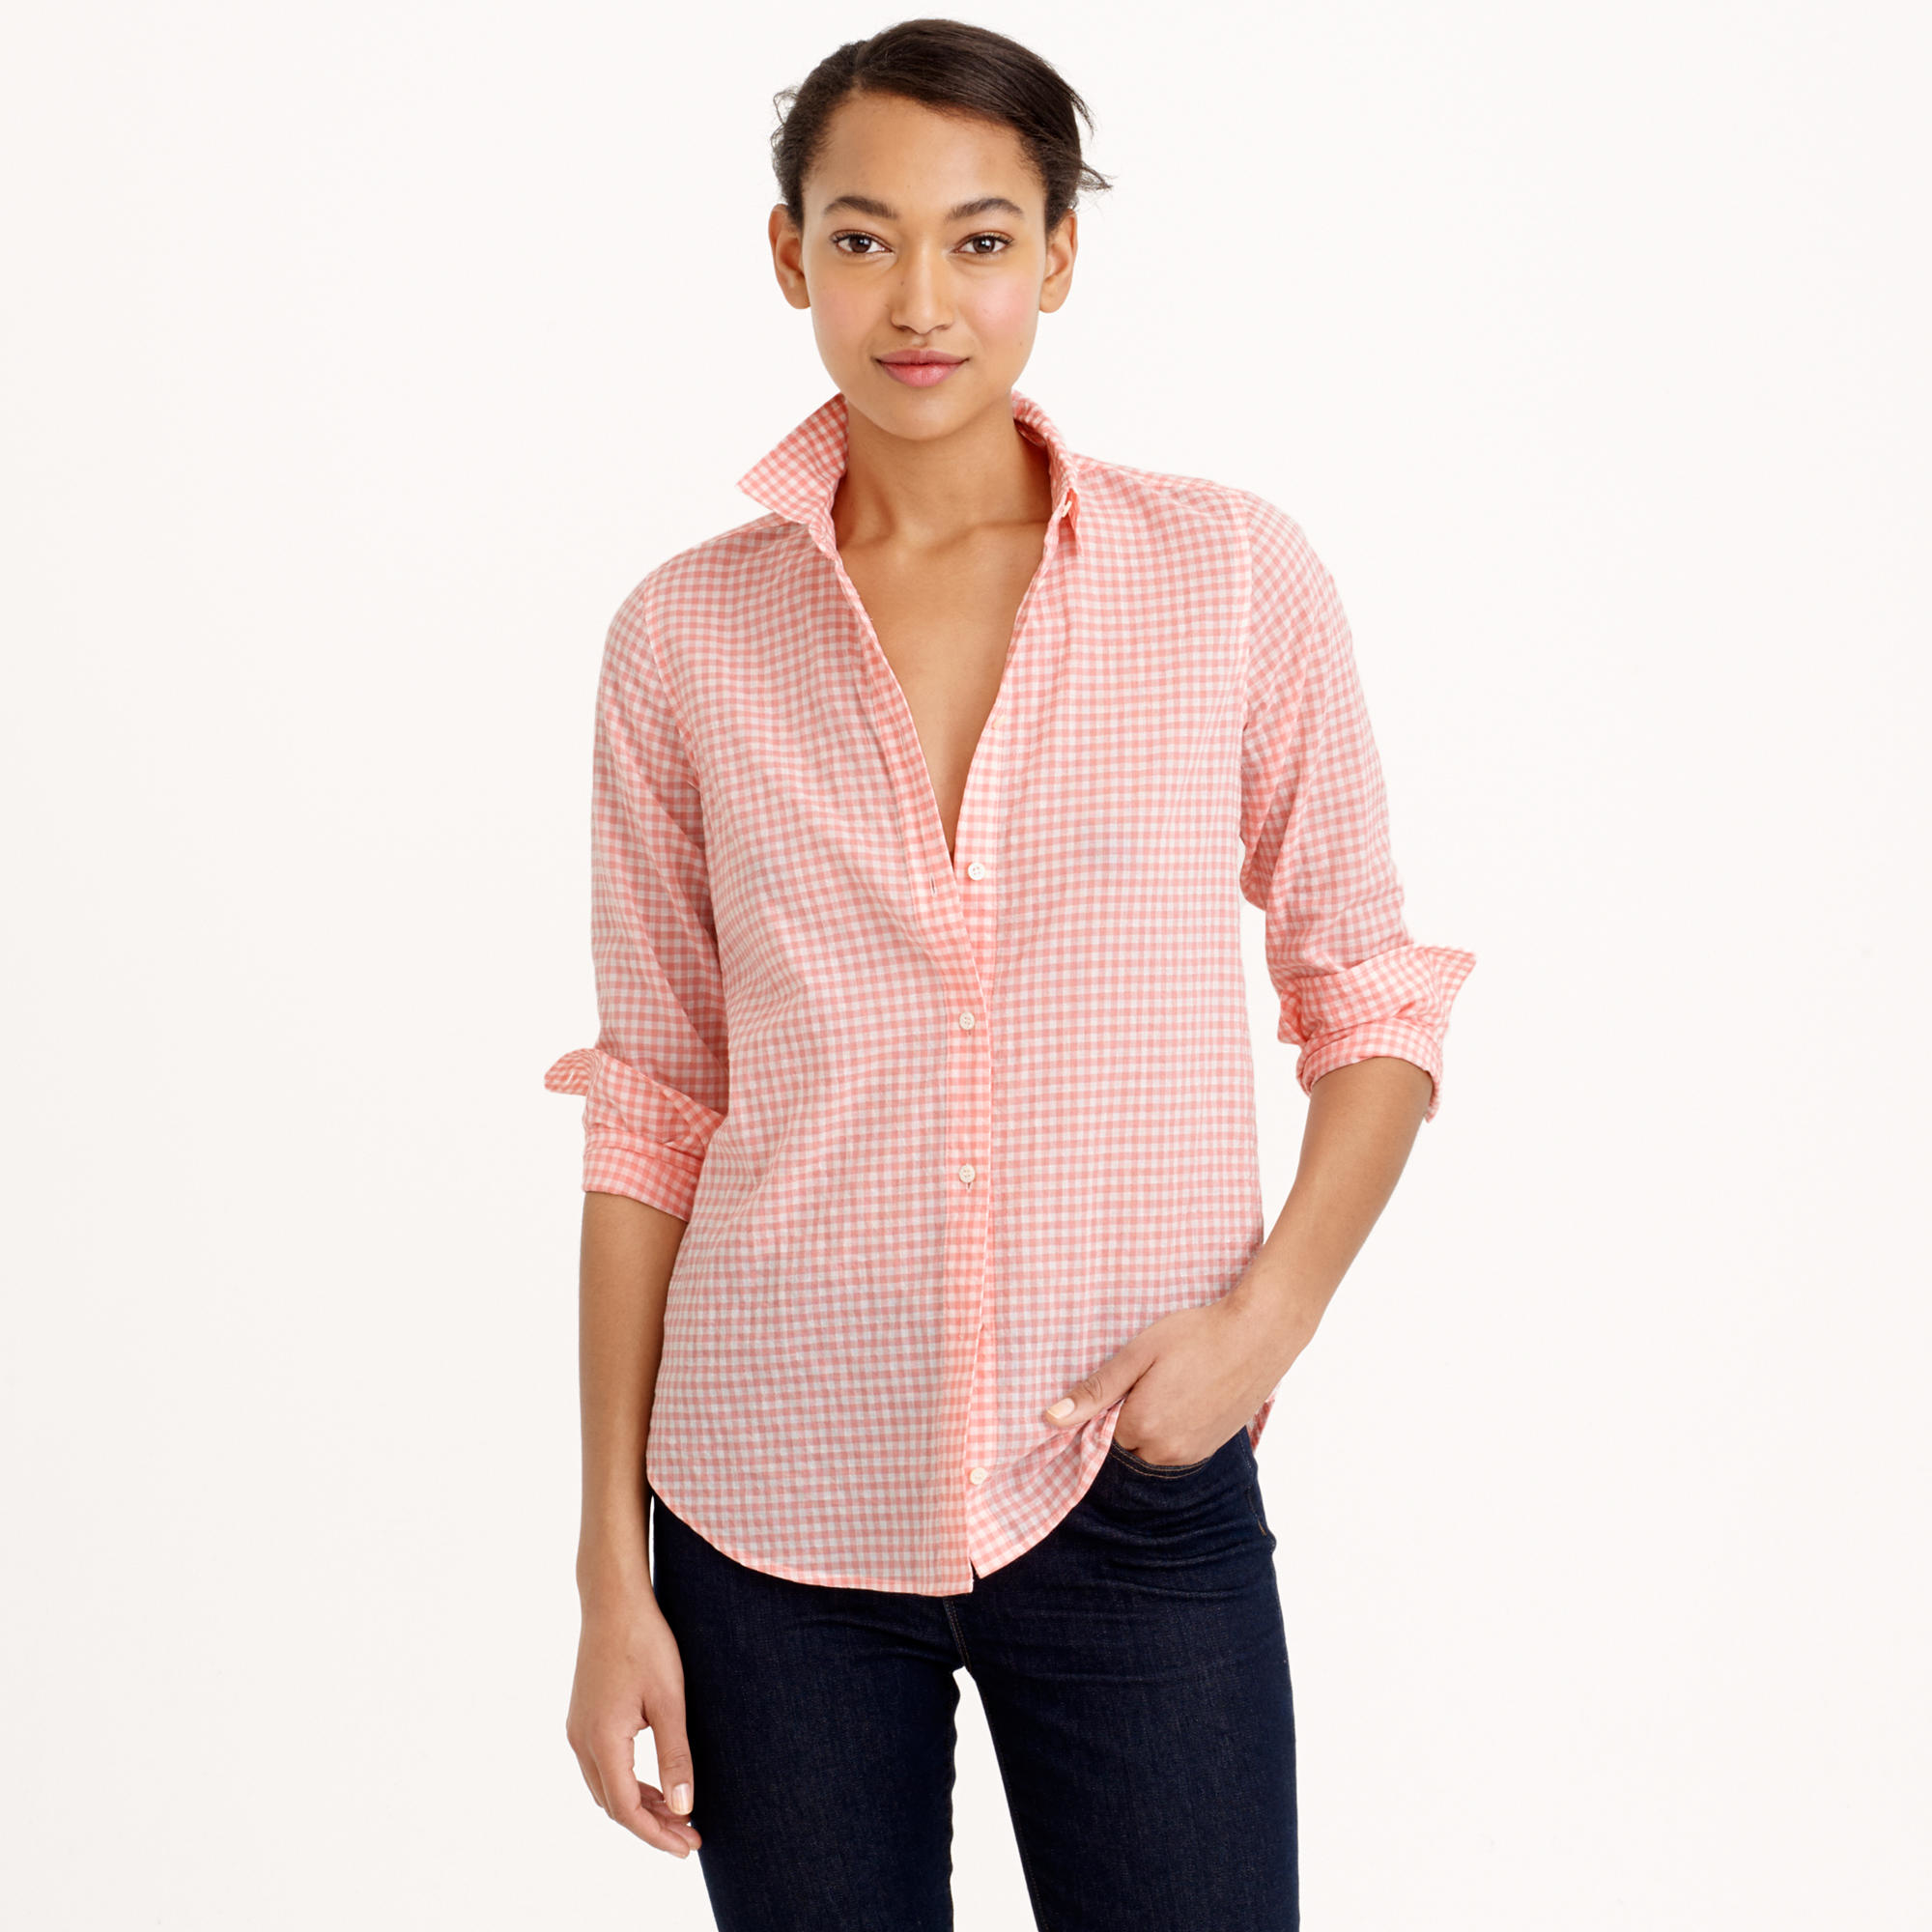 Boy shirt in crinkle gingham in pink lyst for Pink gingham shirt ladies